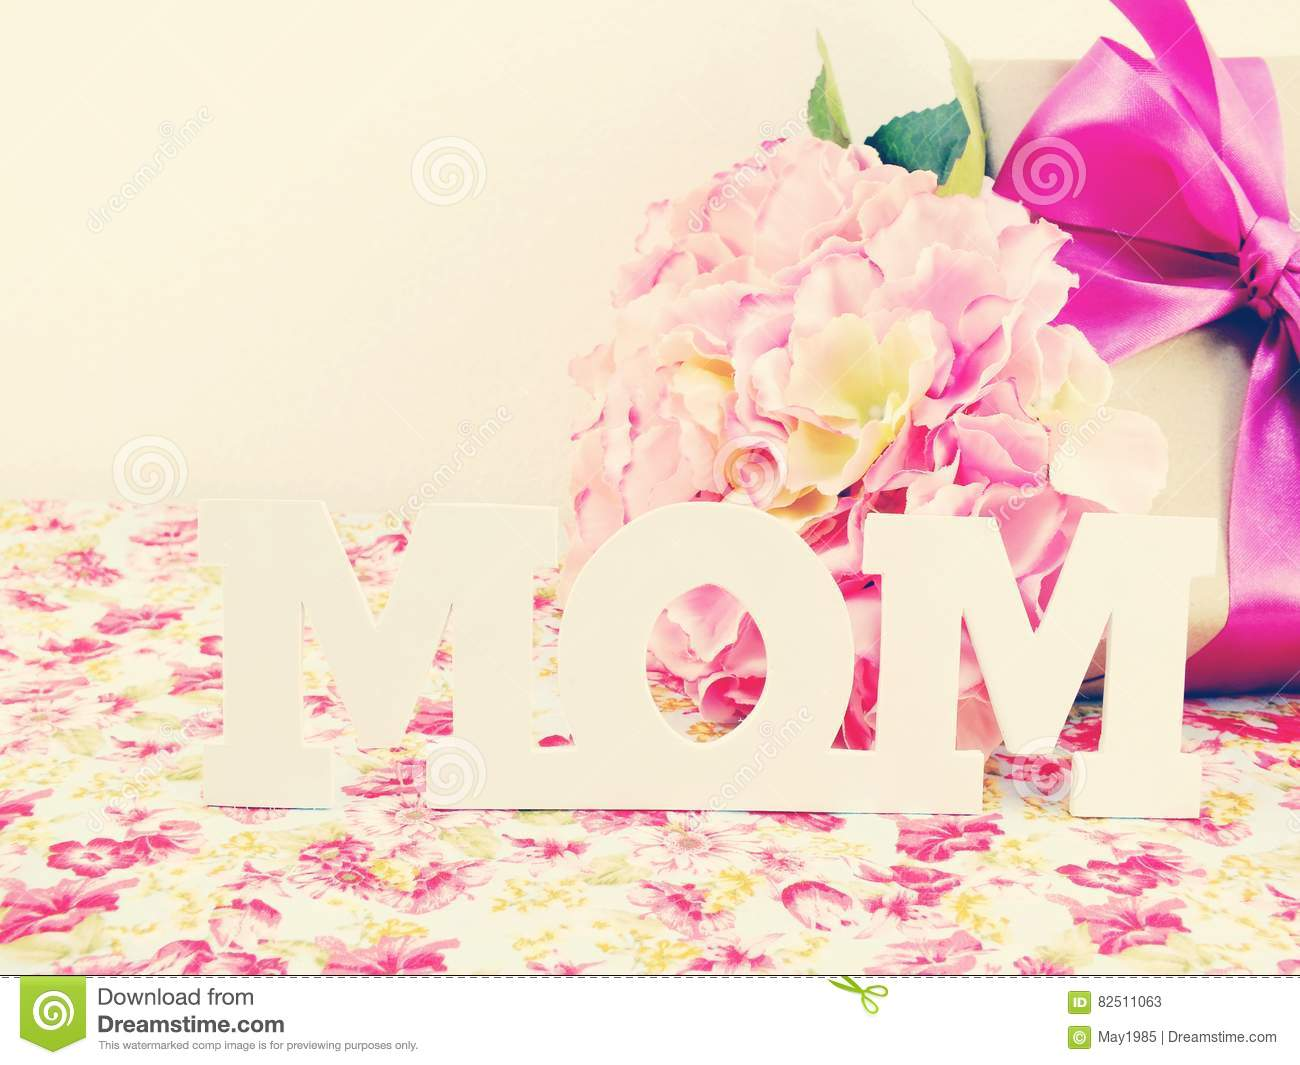 Gifts and beautiful bouquet of flowers for mom for mother day or gifts and beautiful bouquet of flowers for mom for mother day or birthday izmirmasajfo